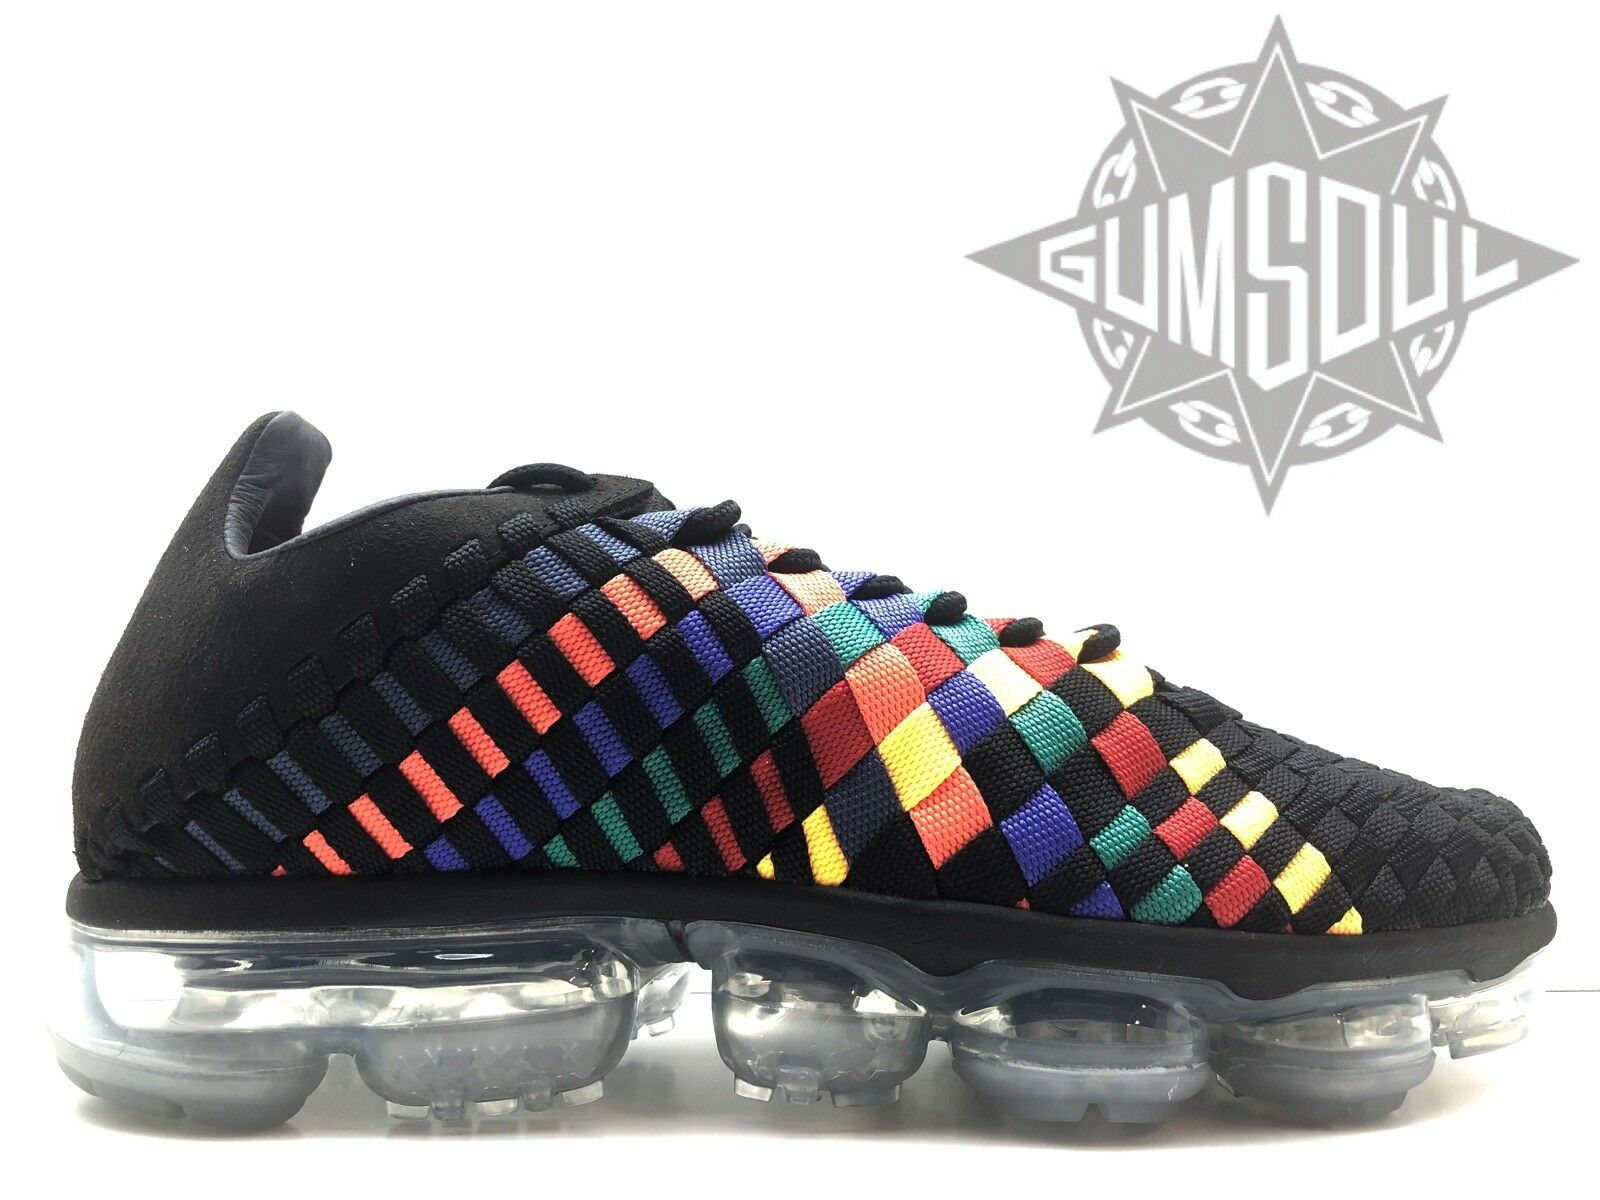 NIKE AIR VAPORMAX INNEVA BLACK GLACIER blueE MULTI-COLOR AO2447 001 sz 10